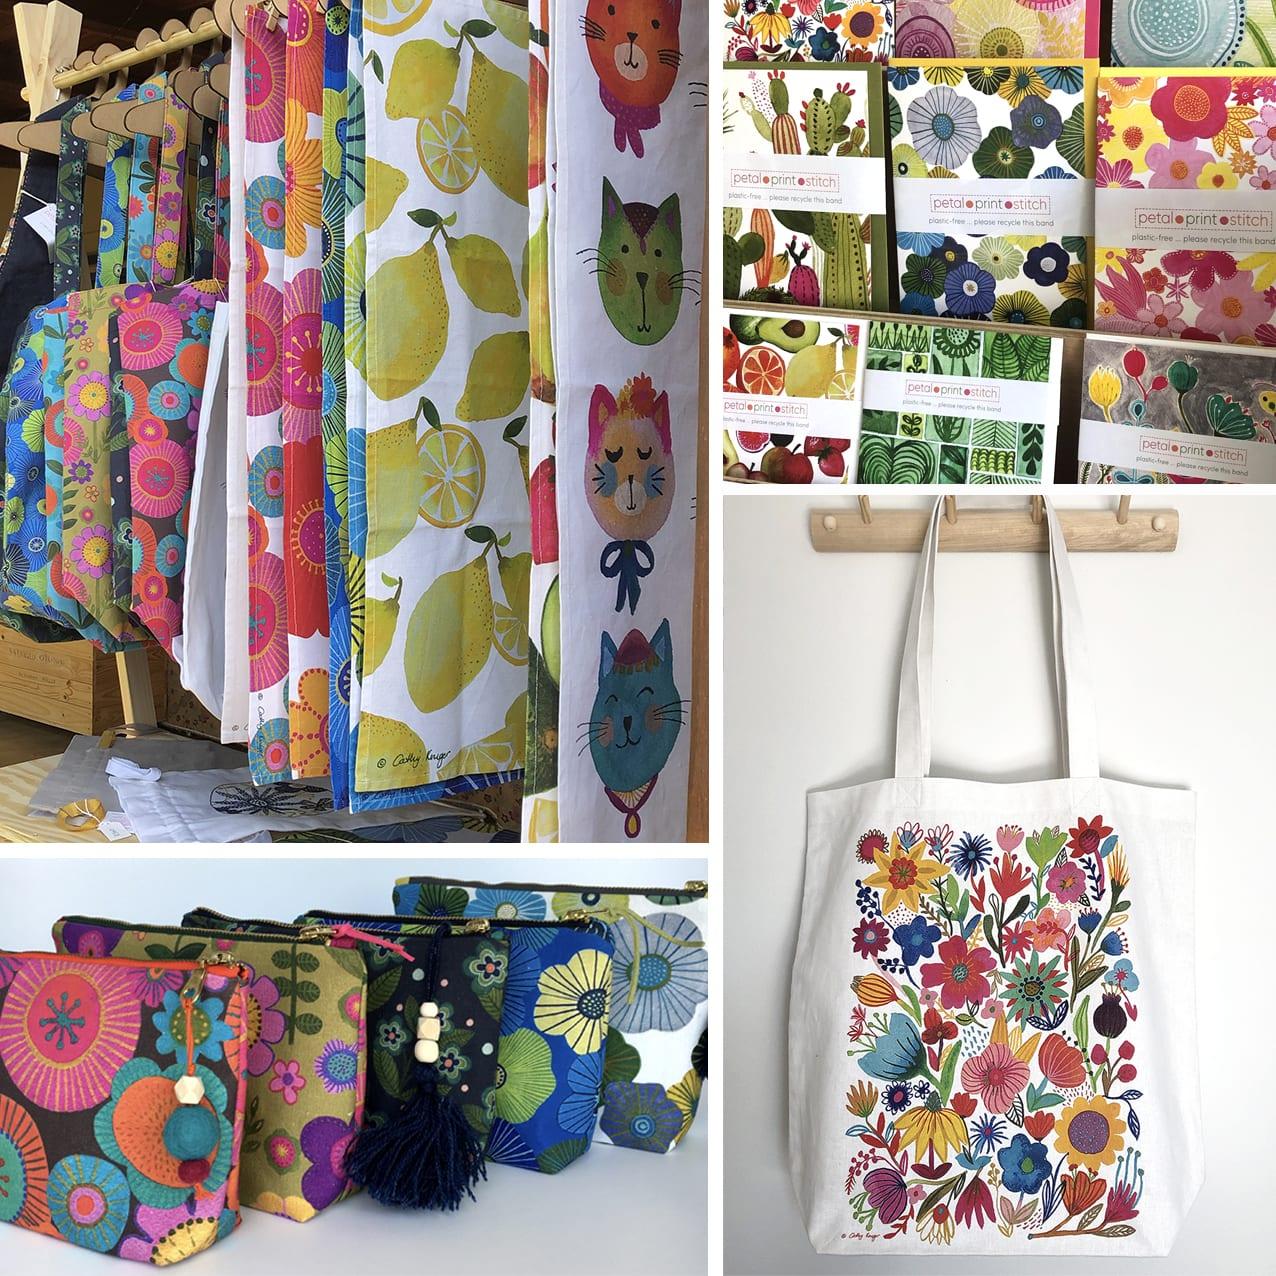 Colourful products by Petal Print Stitch